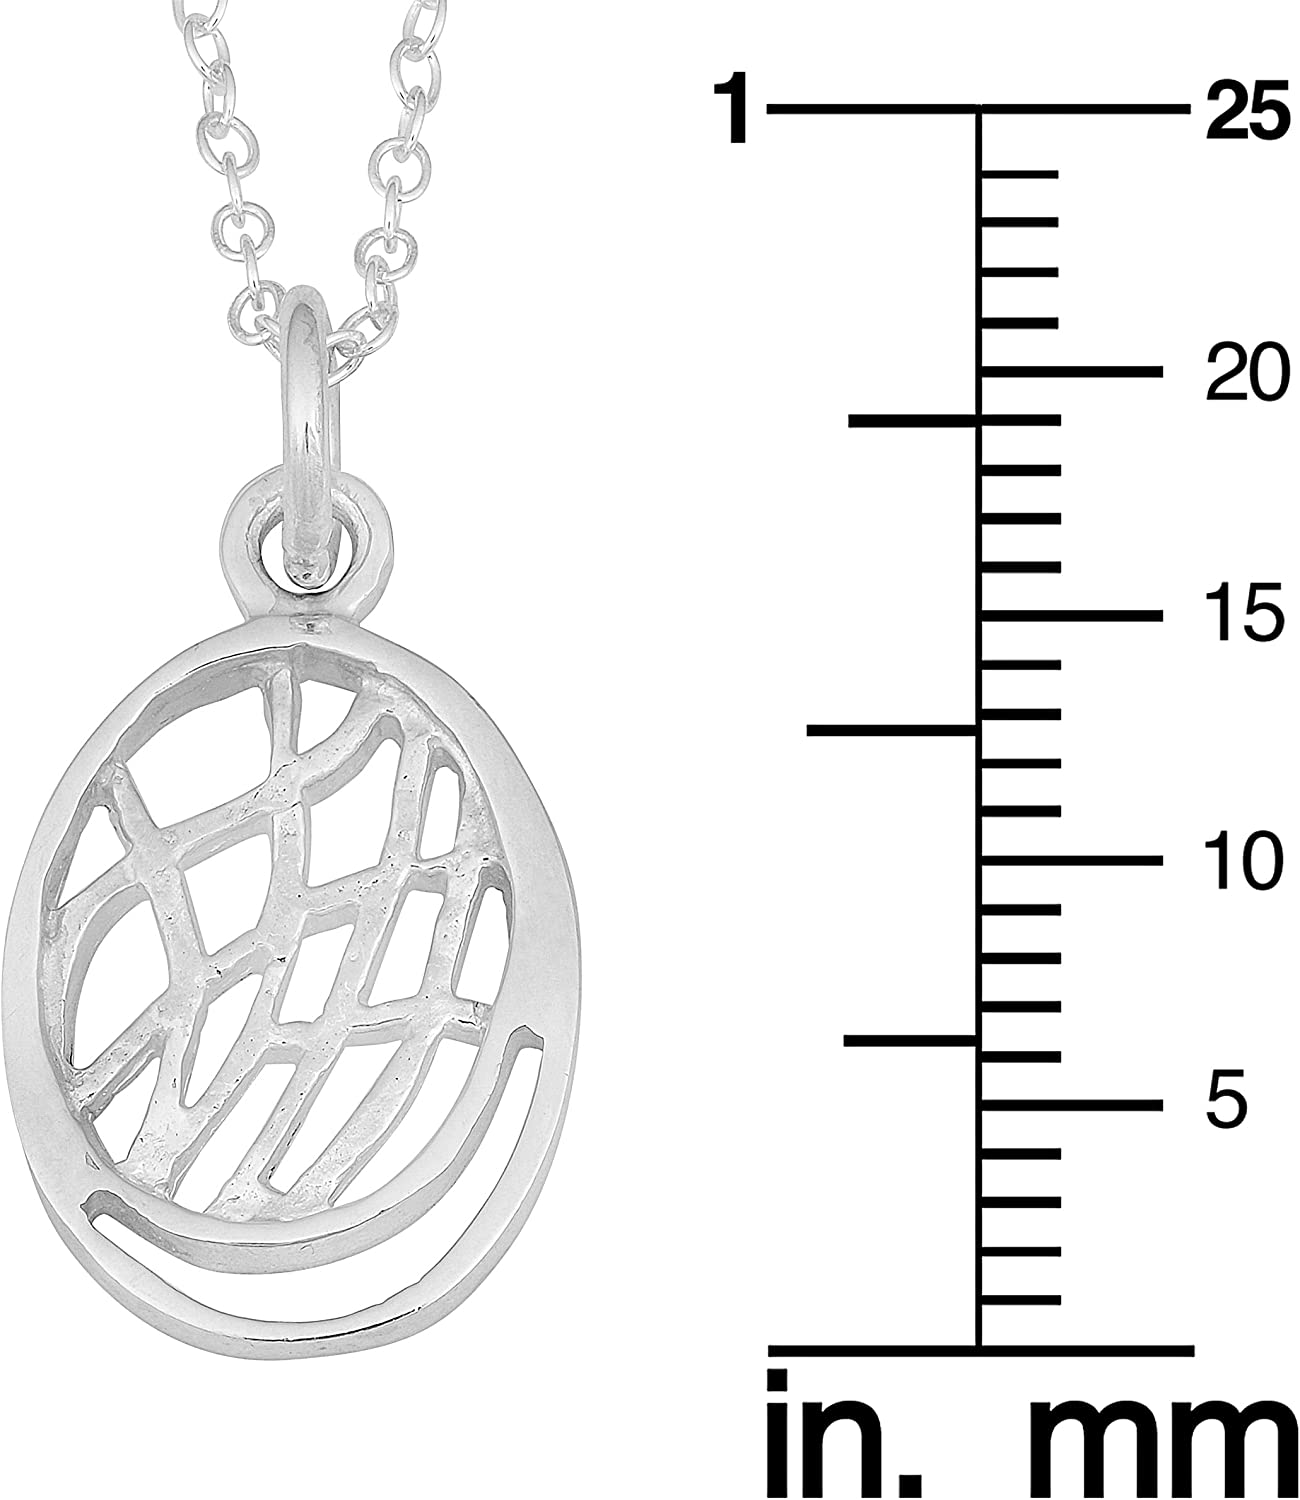 Kooljewelry Sterling Silver High Polish Fancy Oval Pendant on Cable Chain Necklace 18 inch